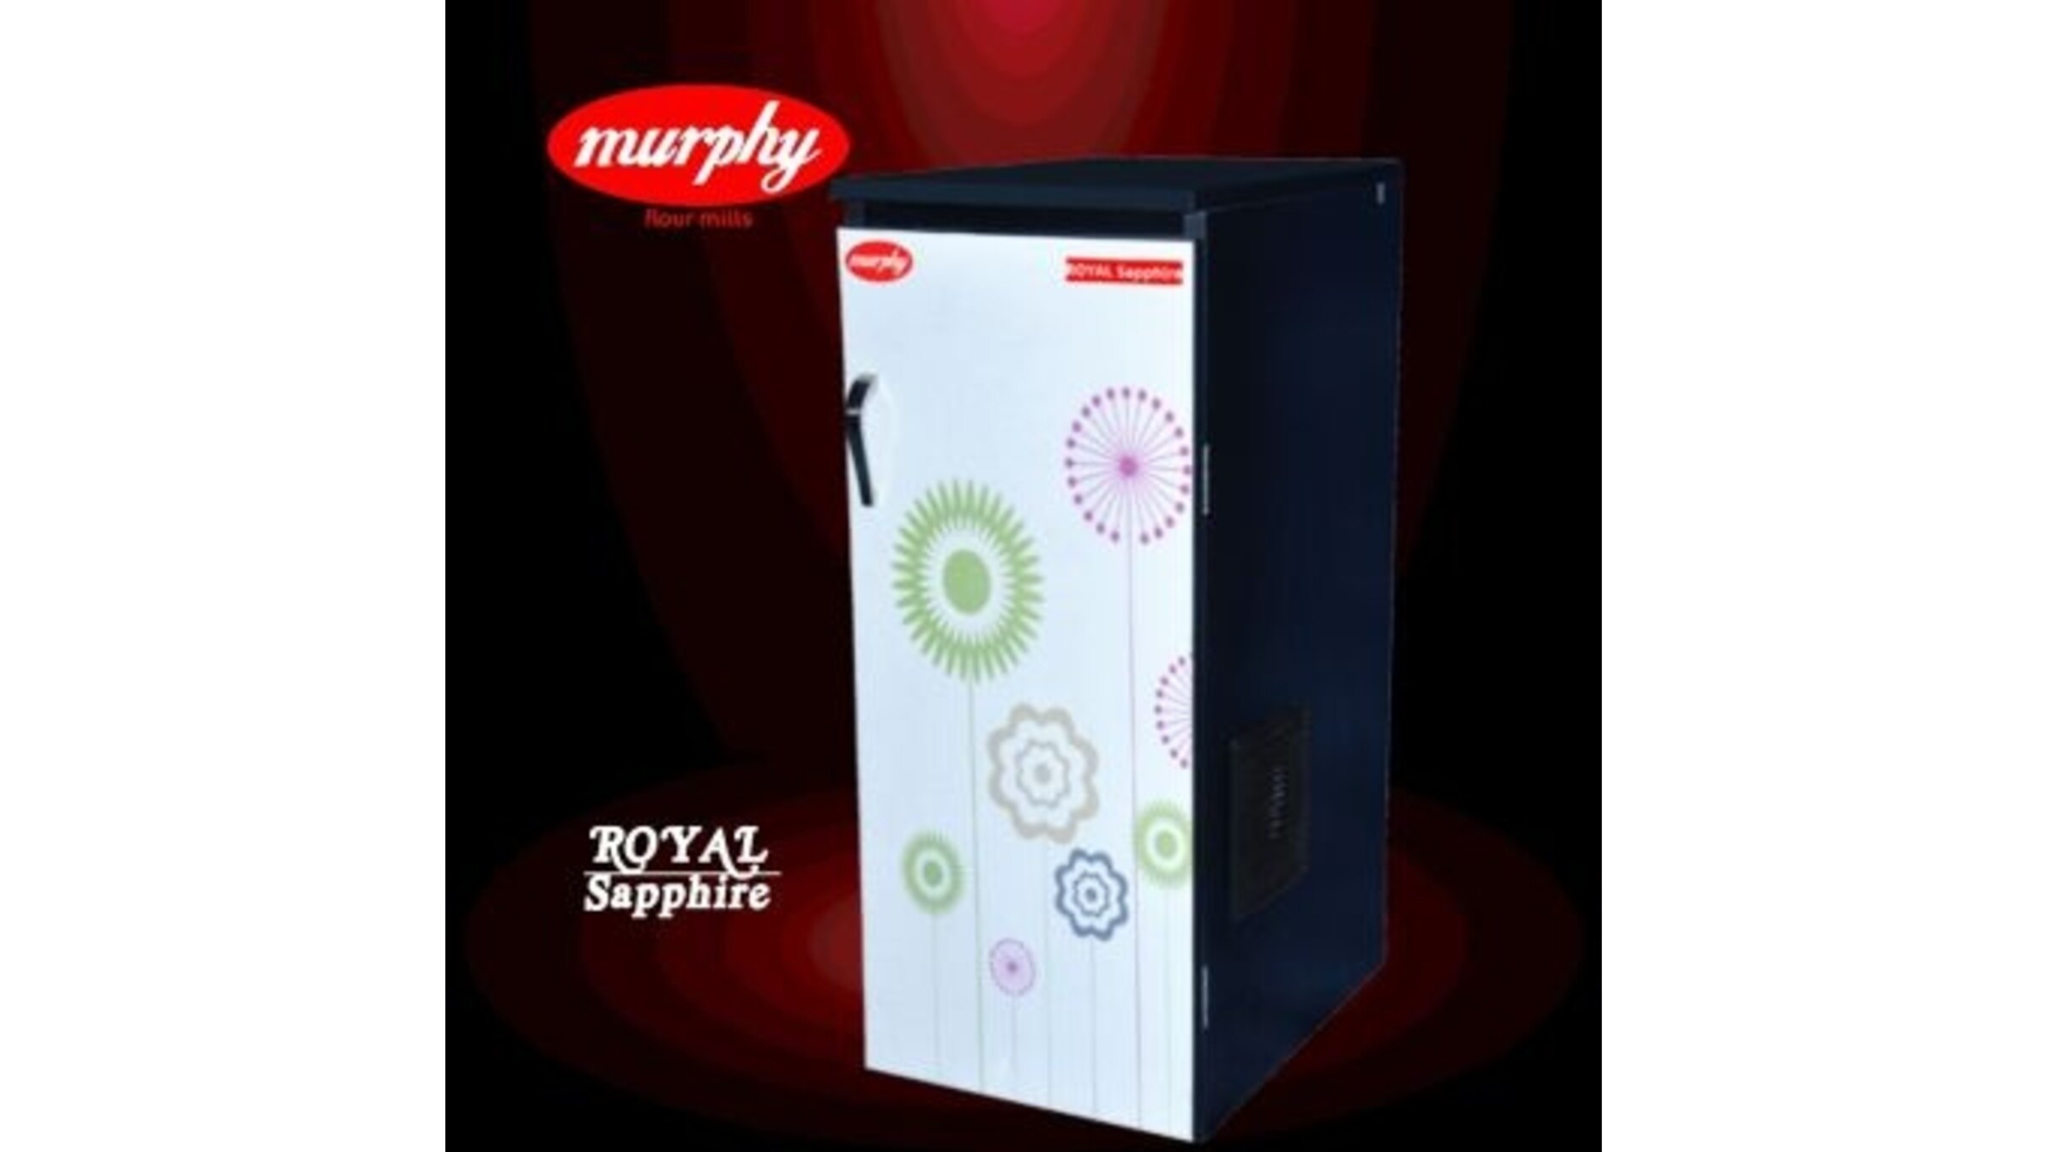 The Atta Chakki sensor of atta chakki, murphy brings reliable gharghantti and outstanding comfort to your home. Now feel the rest of ease with the brand which is trustworthy and...